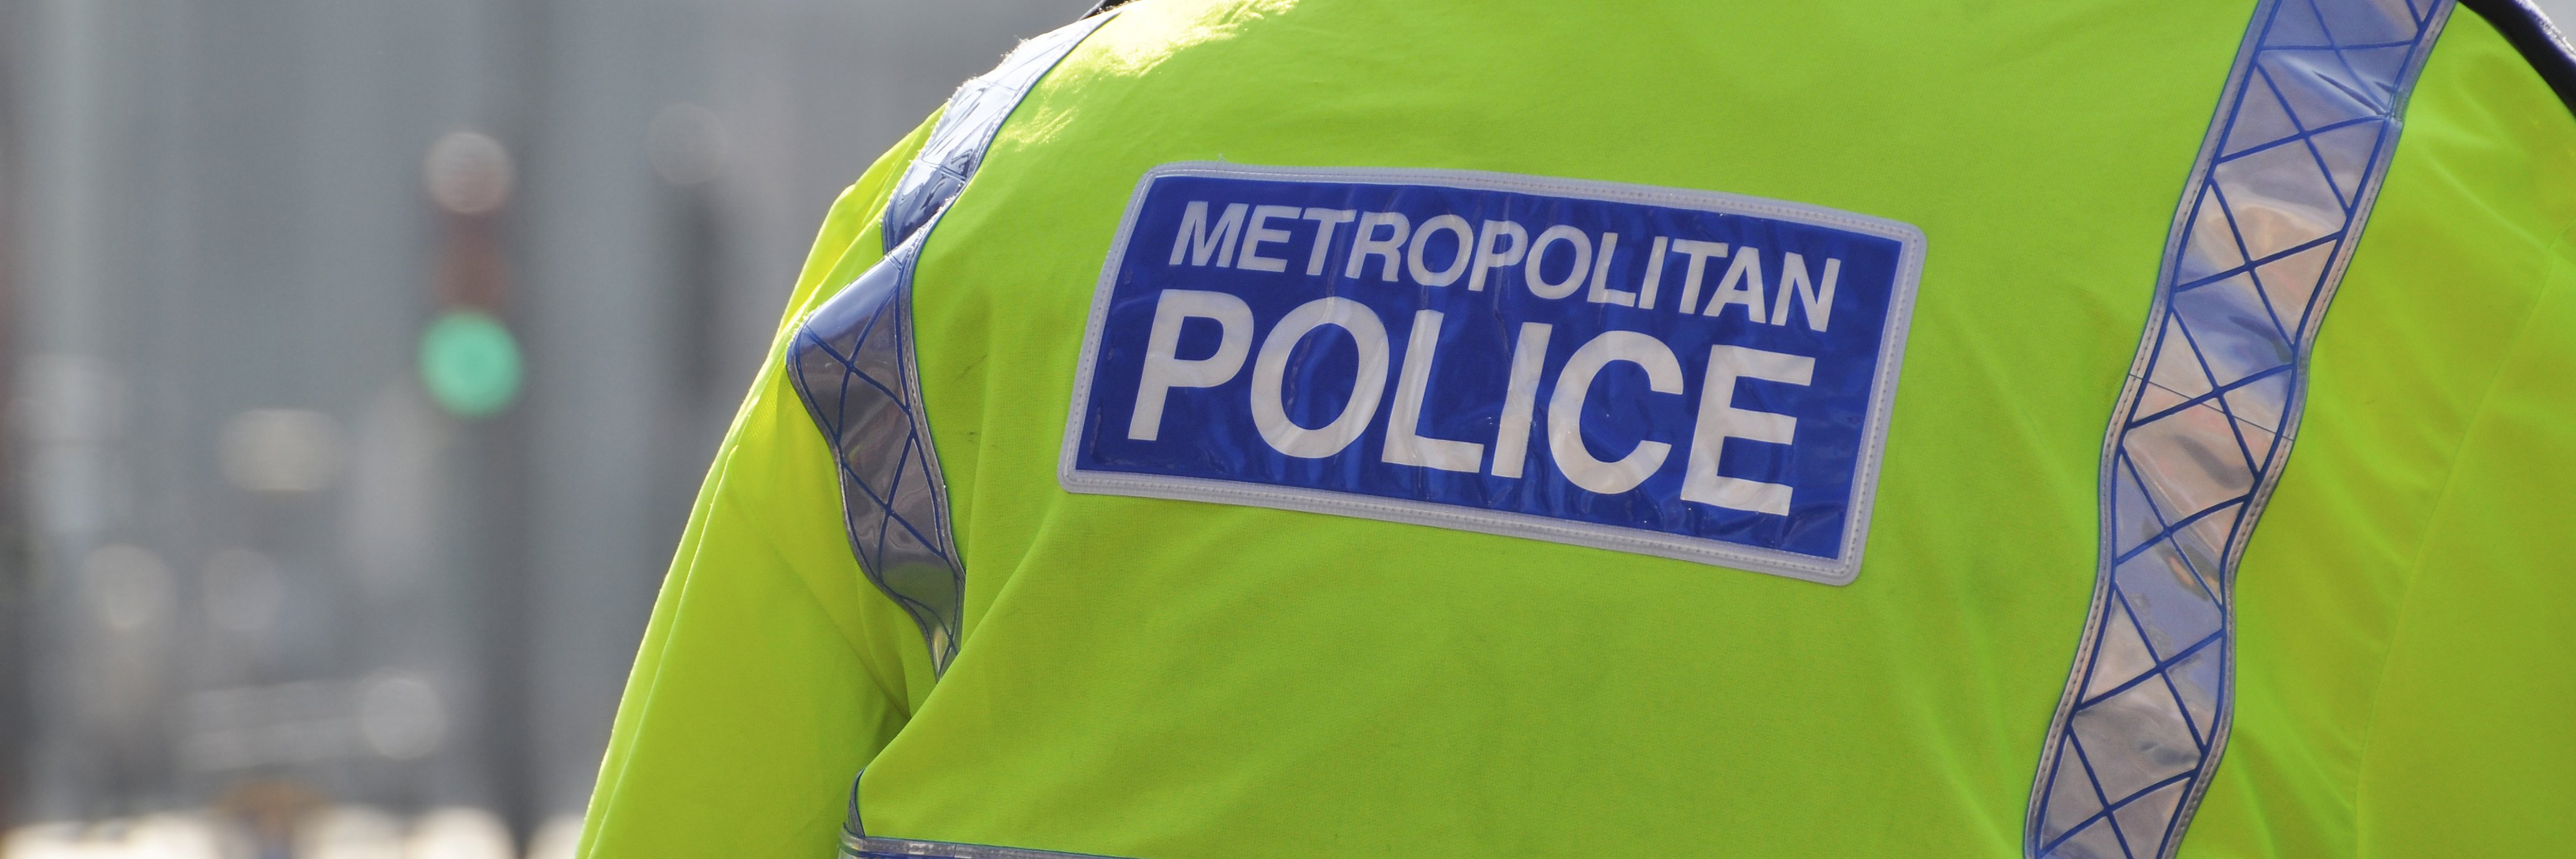 Met Police cancels command and control system contract with Northrop